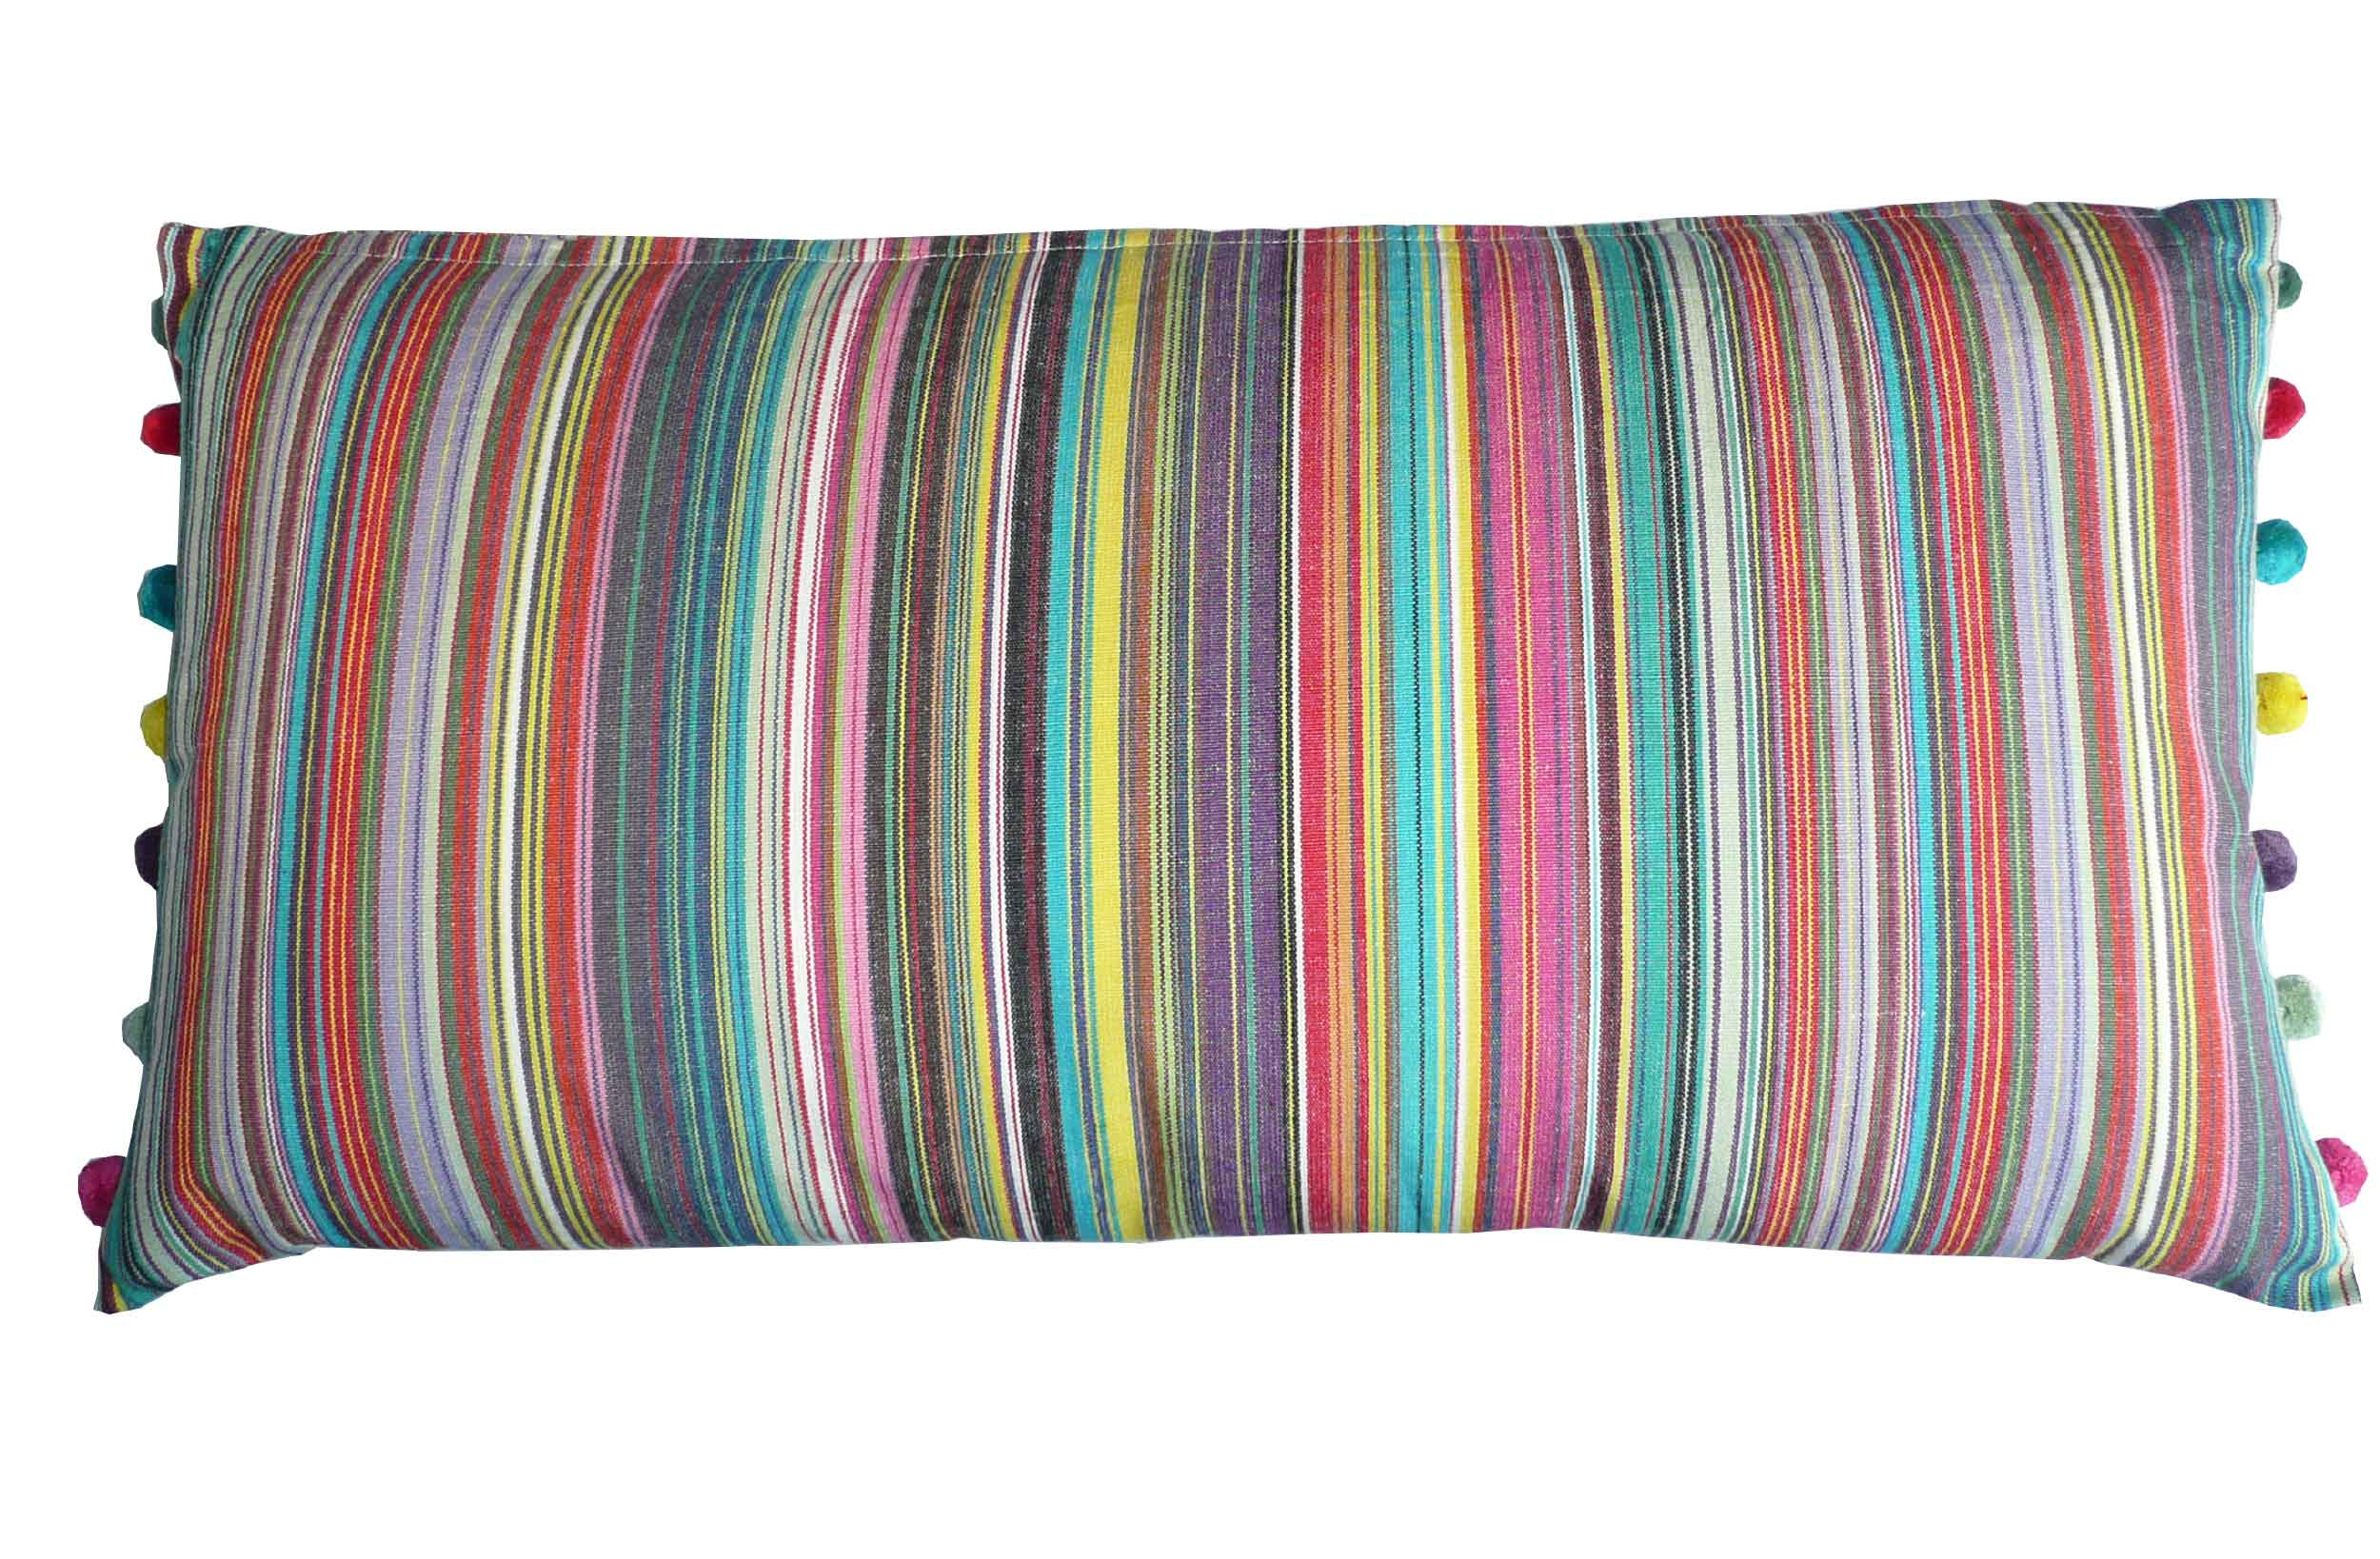 Oblong Cushions thin rainbow multi stripes | Oblong Sofa Cushions | Striped Oblong Cushions with bobble fringe